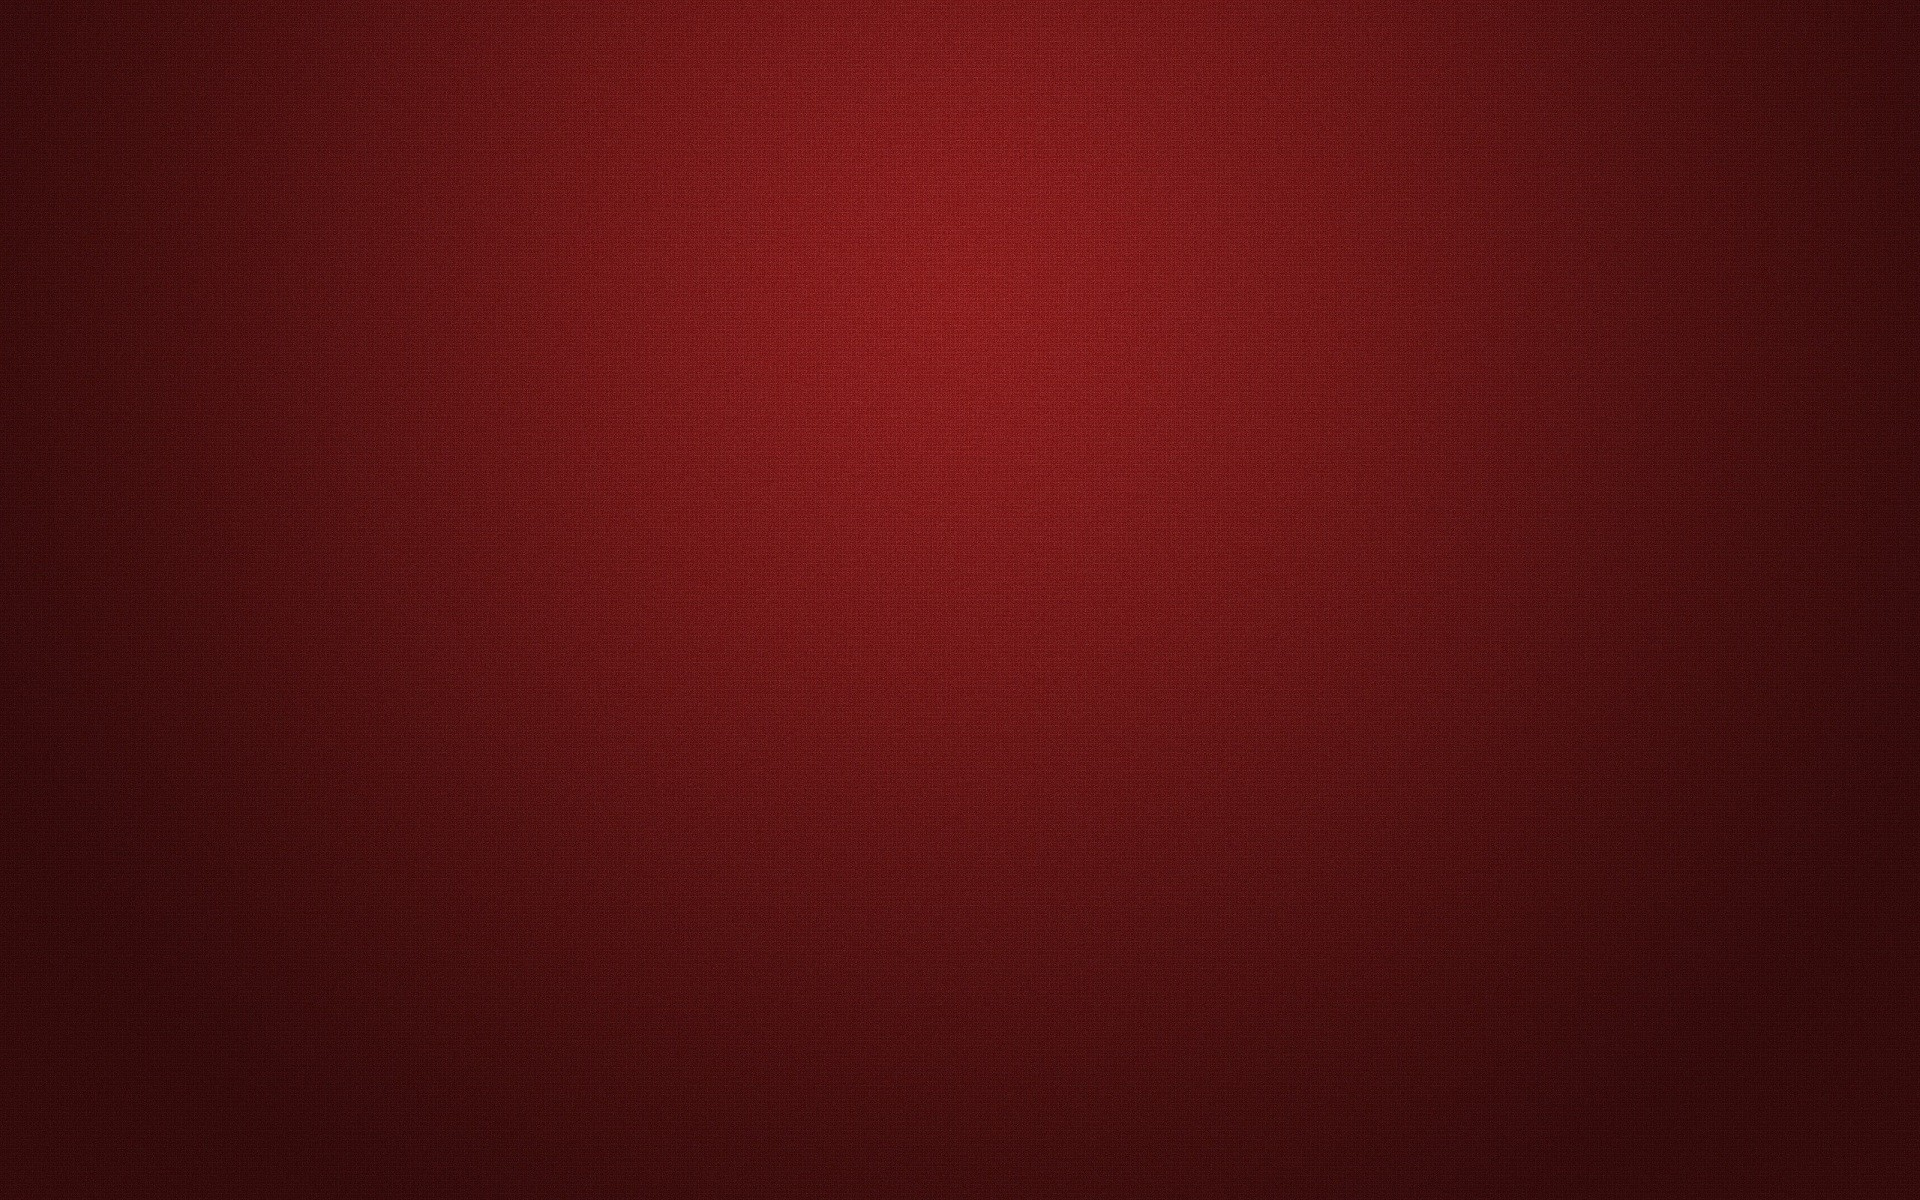 1920x1200 Light abstract red backgrounds gradient wallpaper |  | 15559 |  WallpaperUP